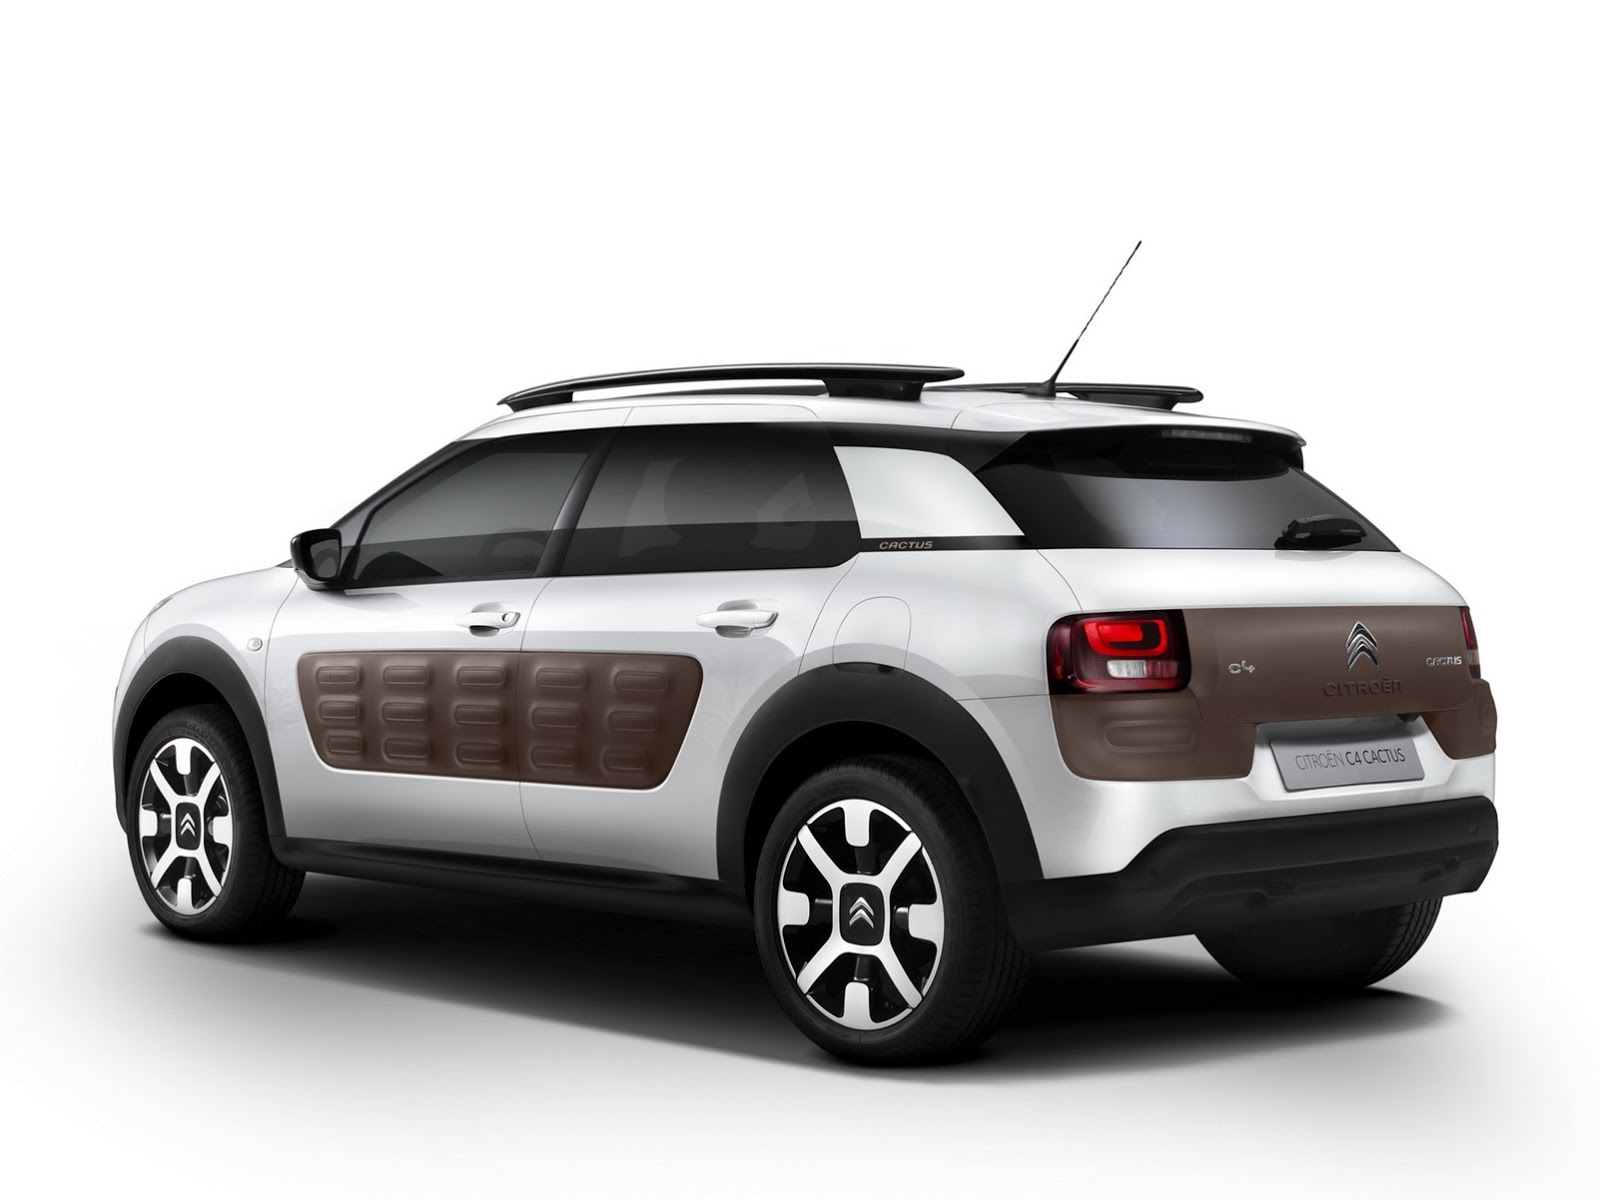 citroen c4 cactus interior and exterior photos leaked autoevolution. Black Bedroom Furniture Sets. Home Design Ideas